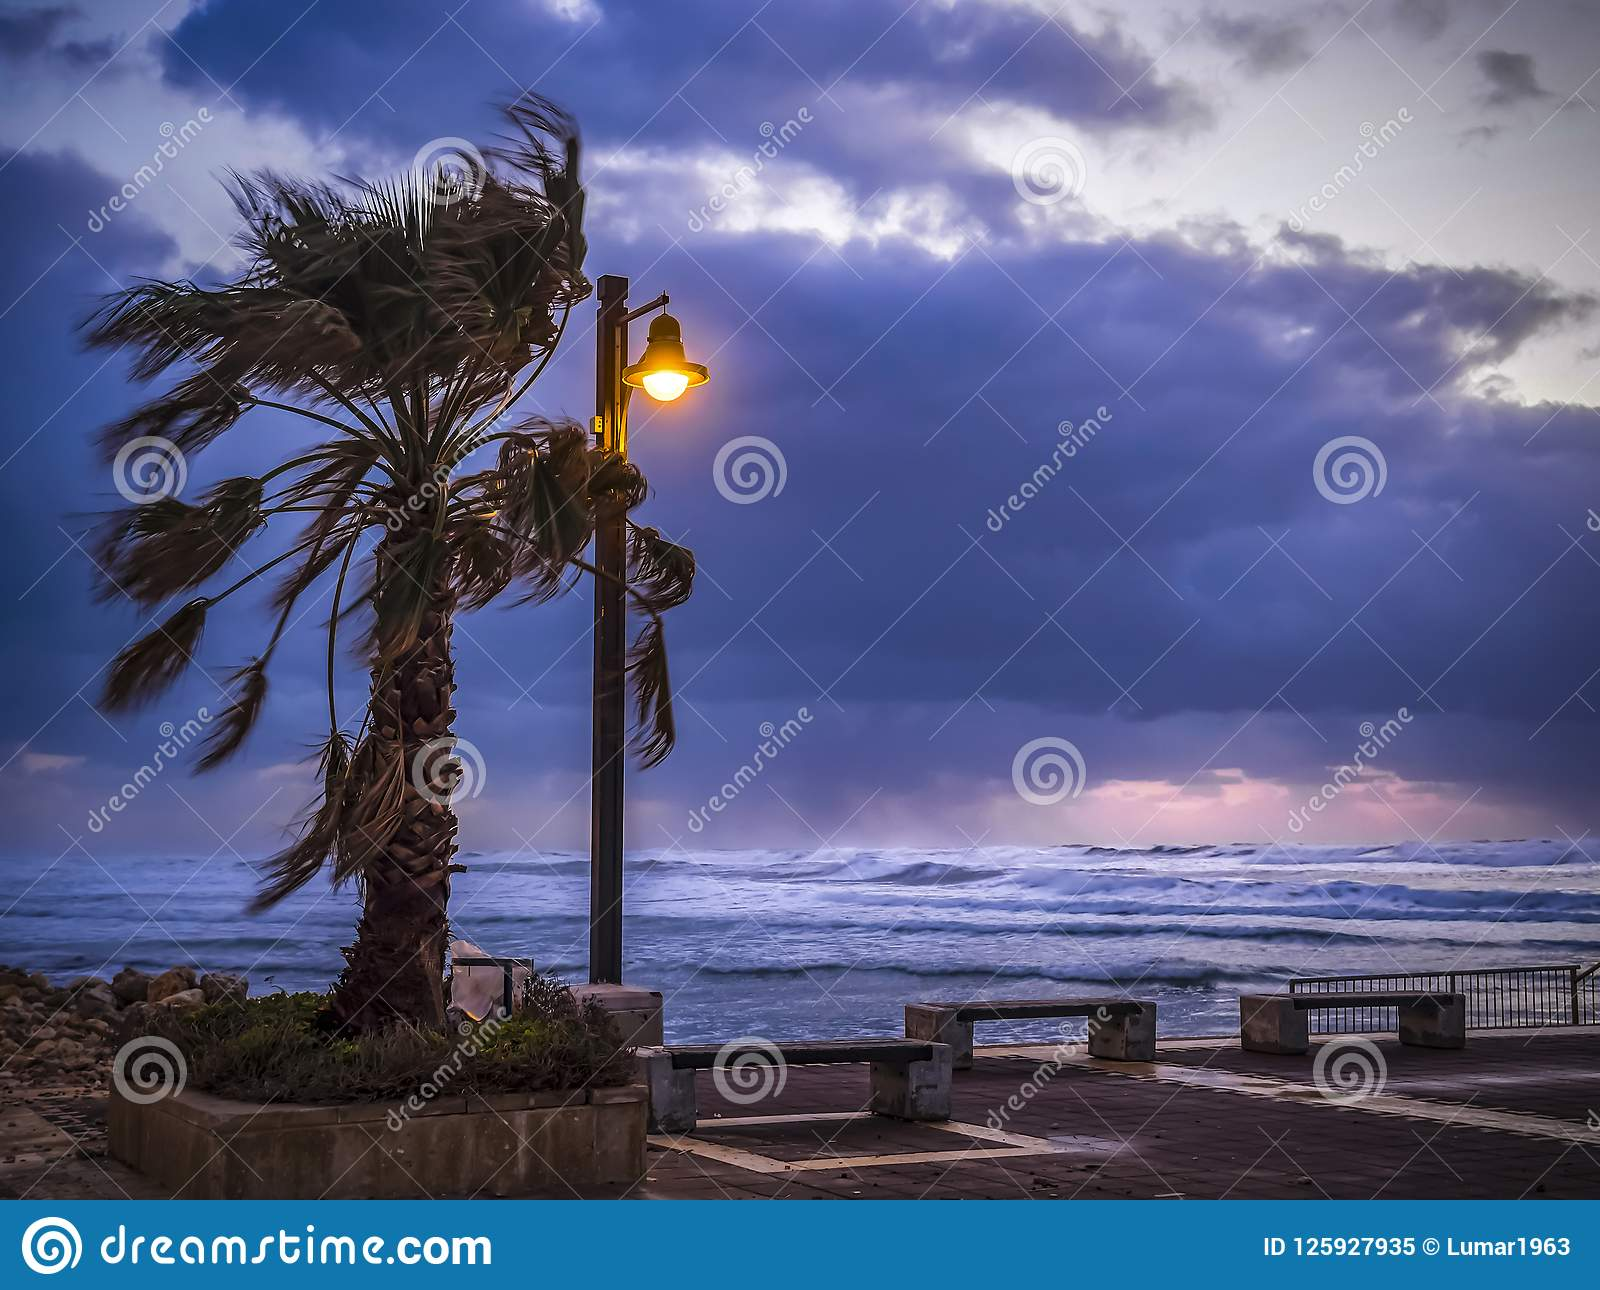 Stormy wind weather on the shores of the Mediterranean Sea, twilight, burning lantern.